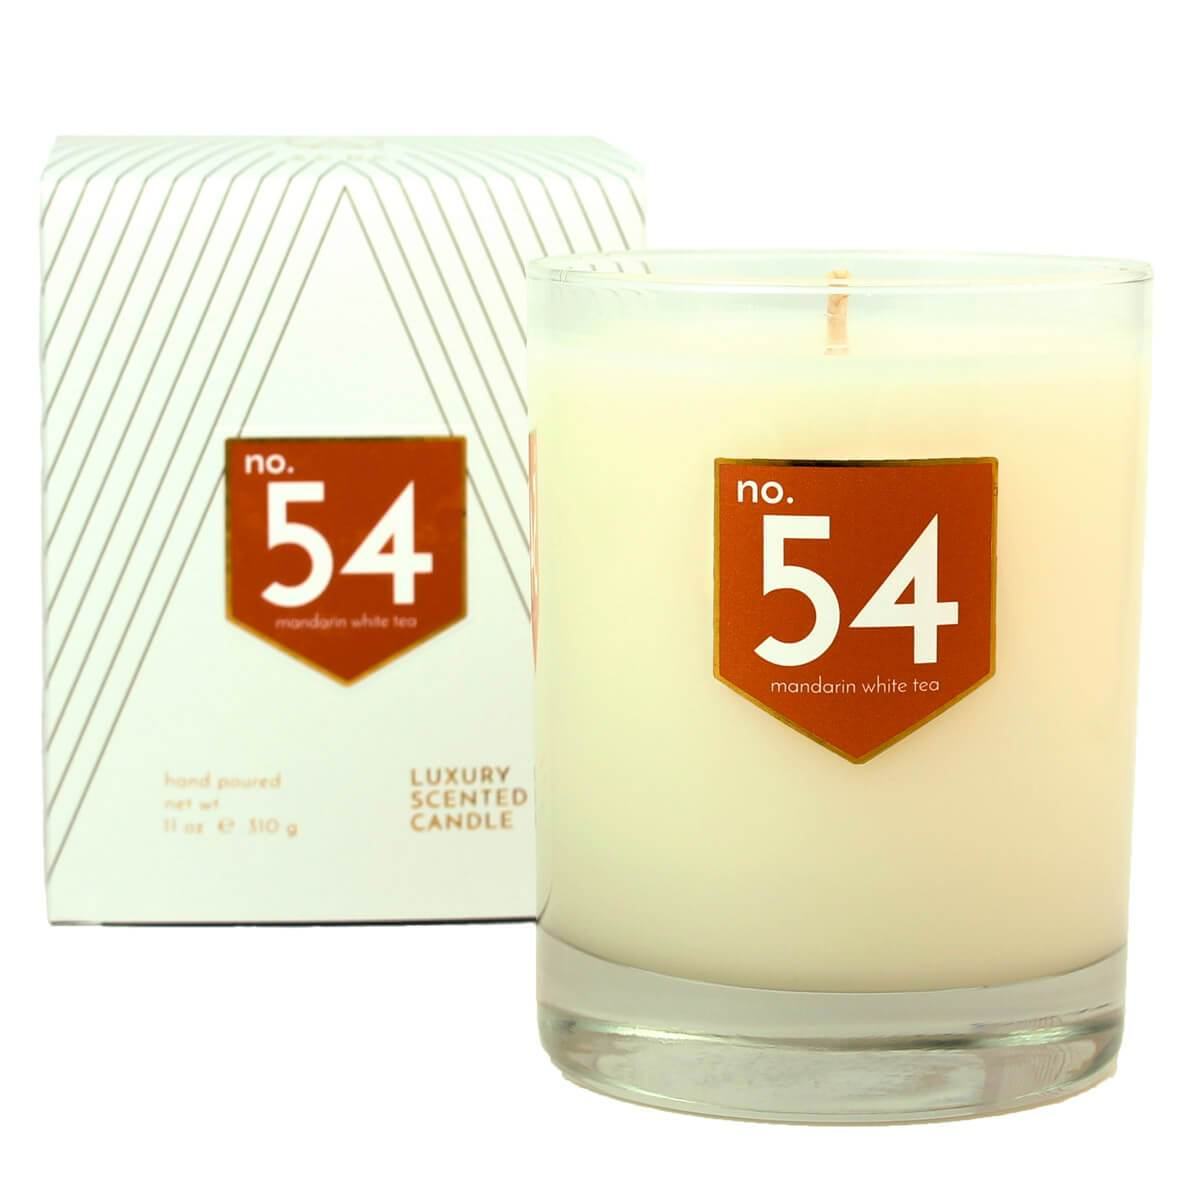 ACDC Candles No. 54 Mandarin White Tea Scented Soy Candle